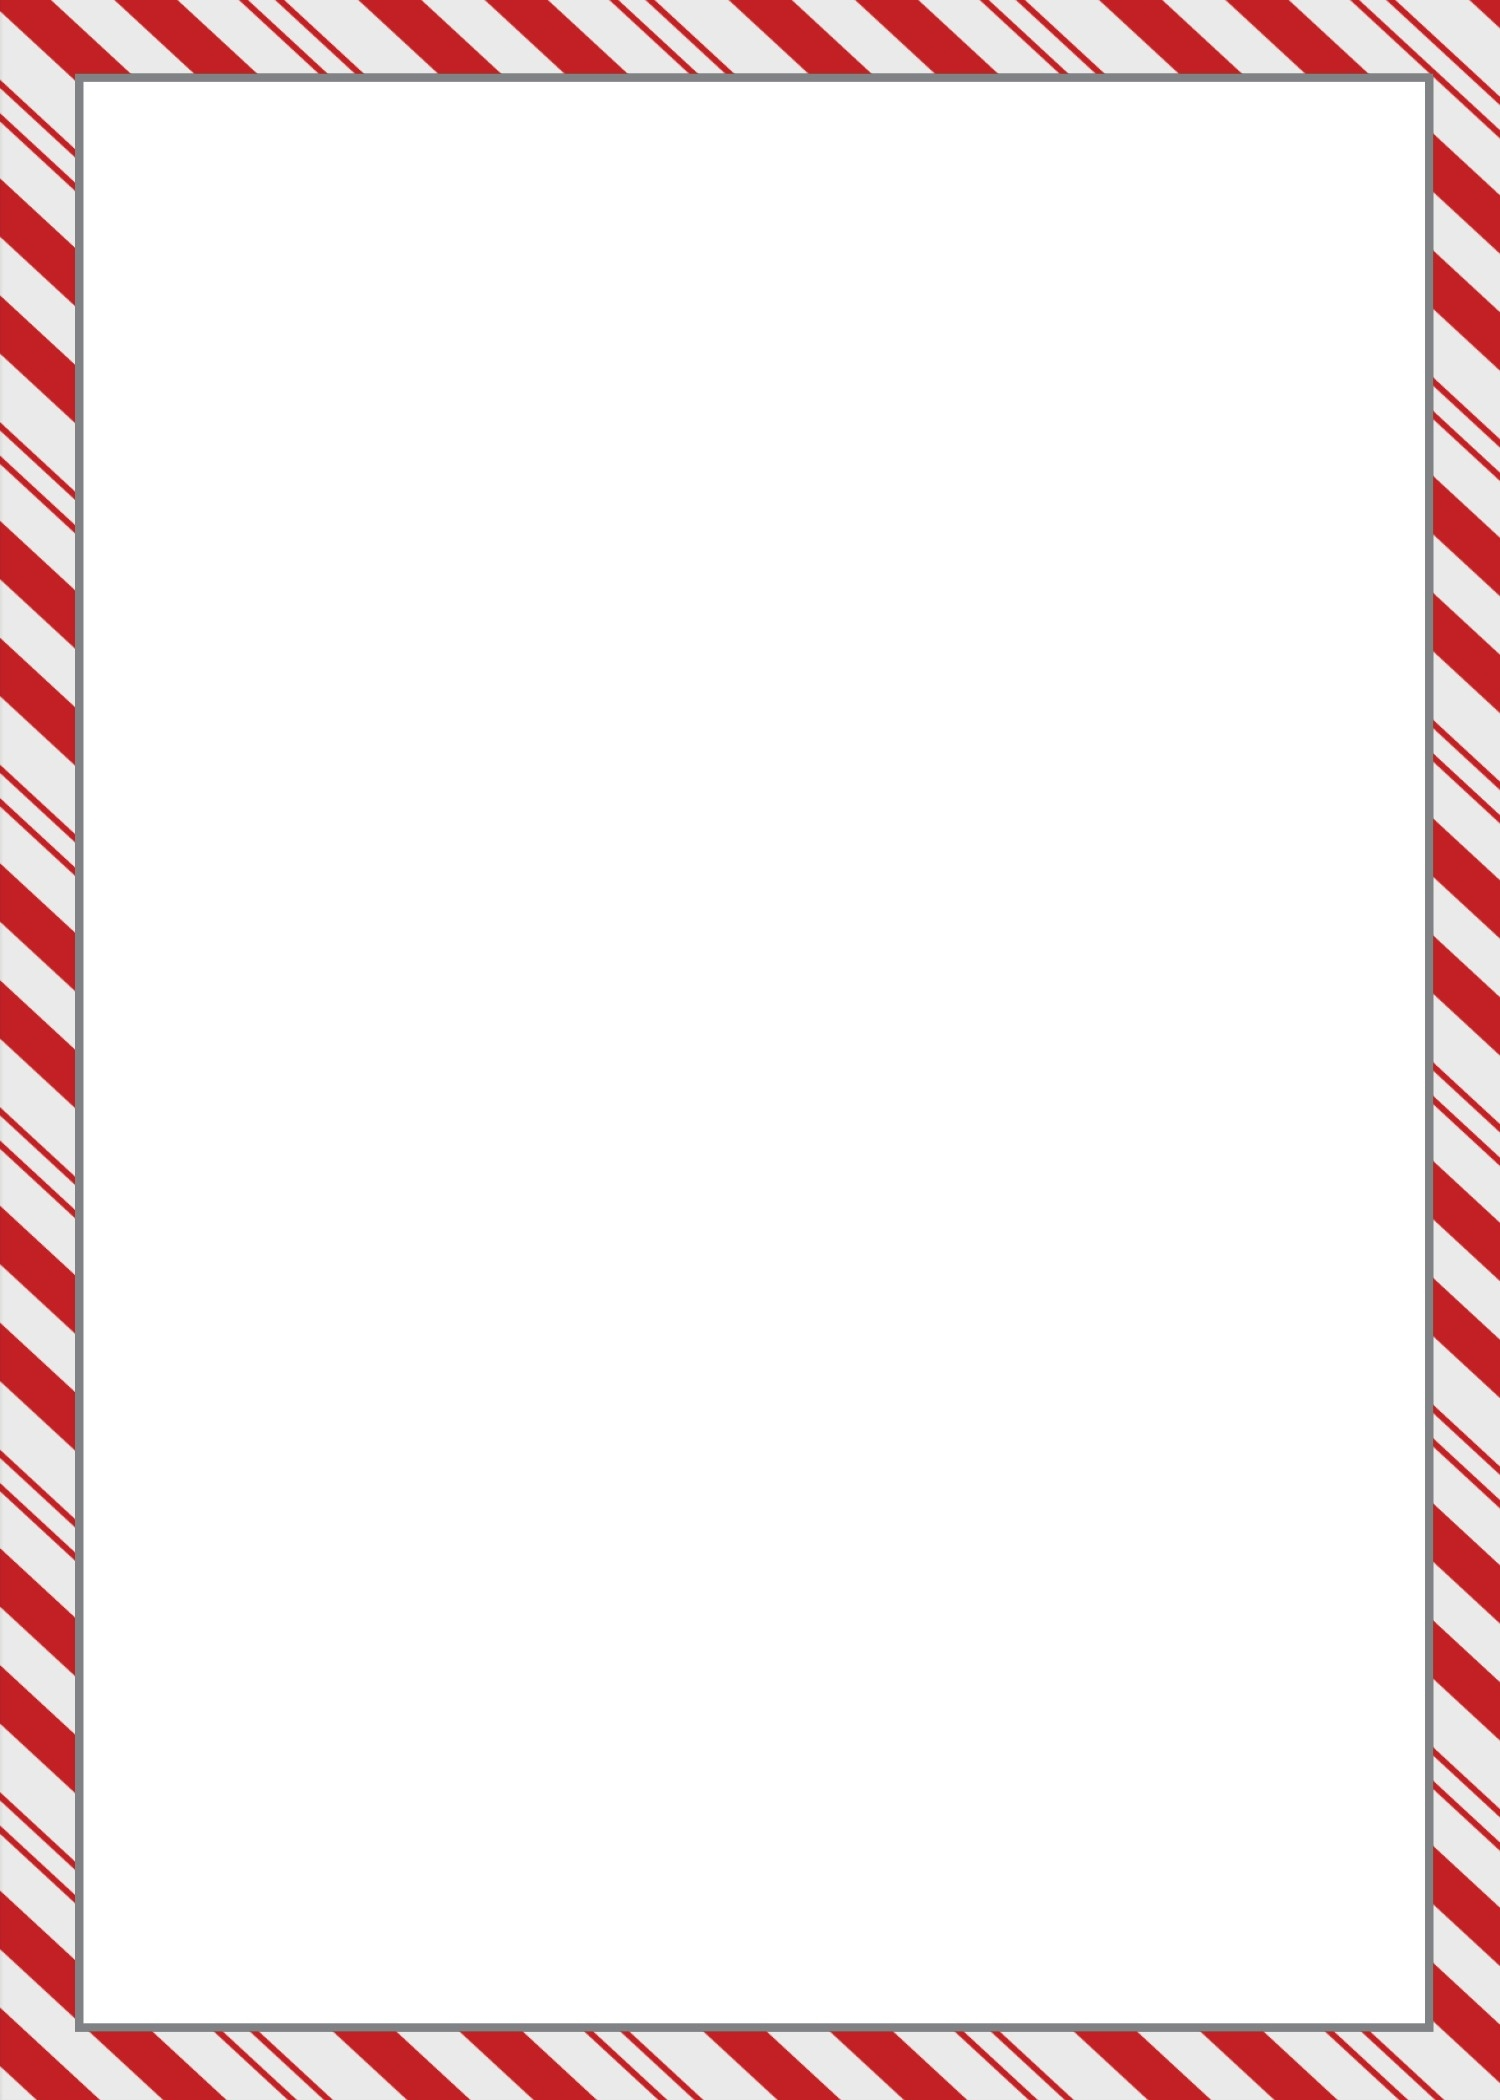 hight resolution of christmas candy cane border clip art fun for christmas throughout candy canes clipart image christmas page border made of candy canes